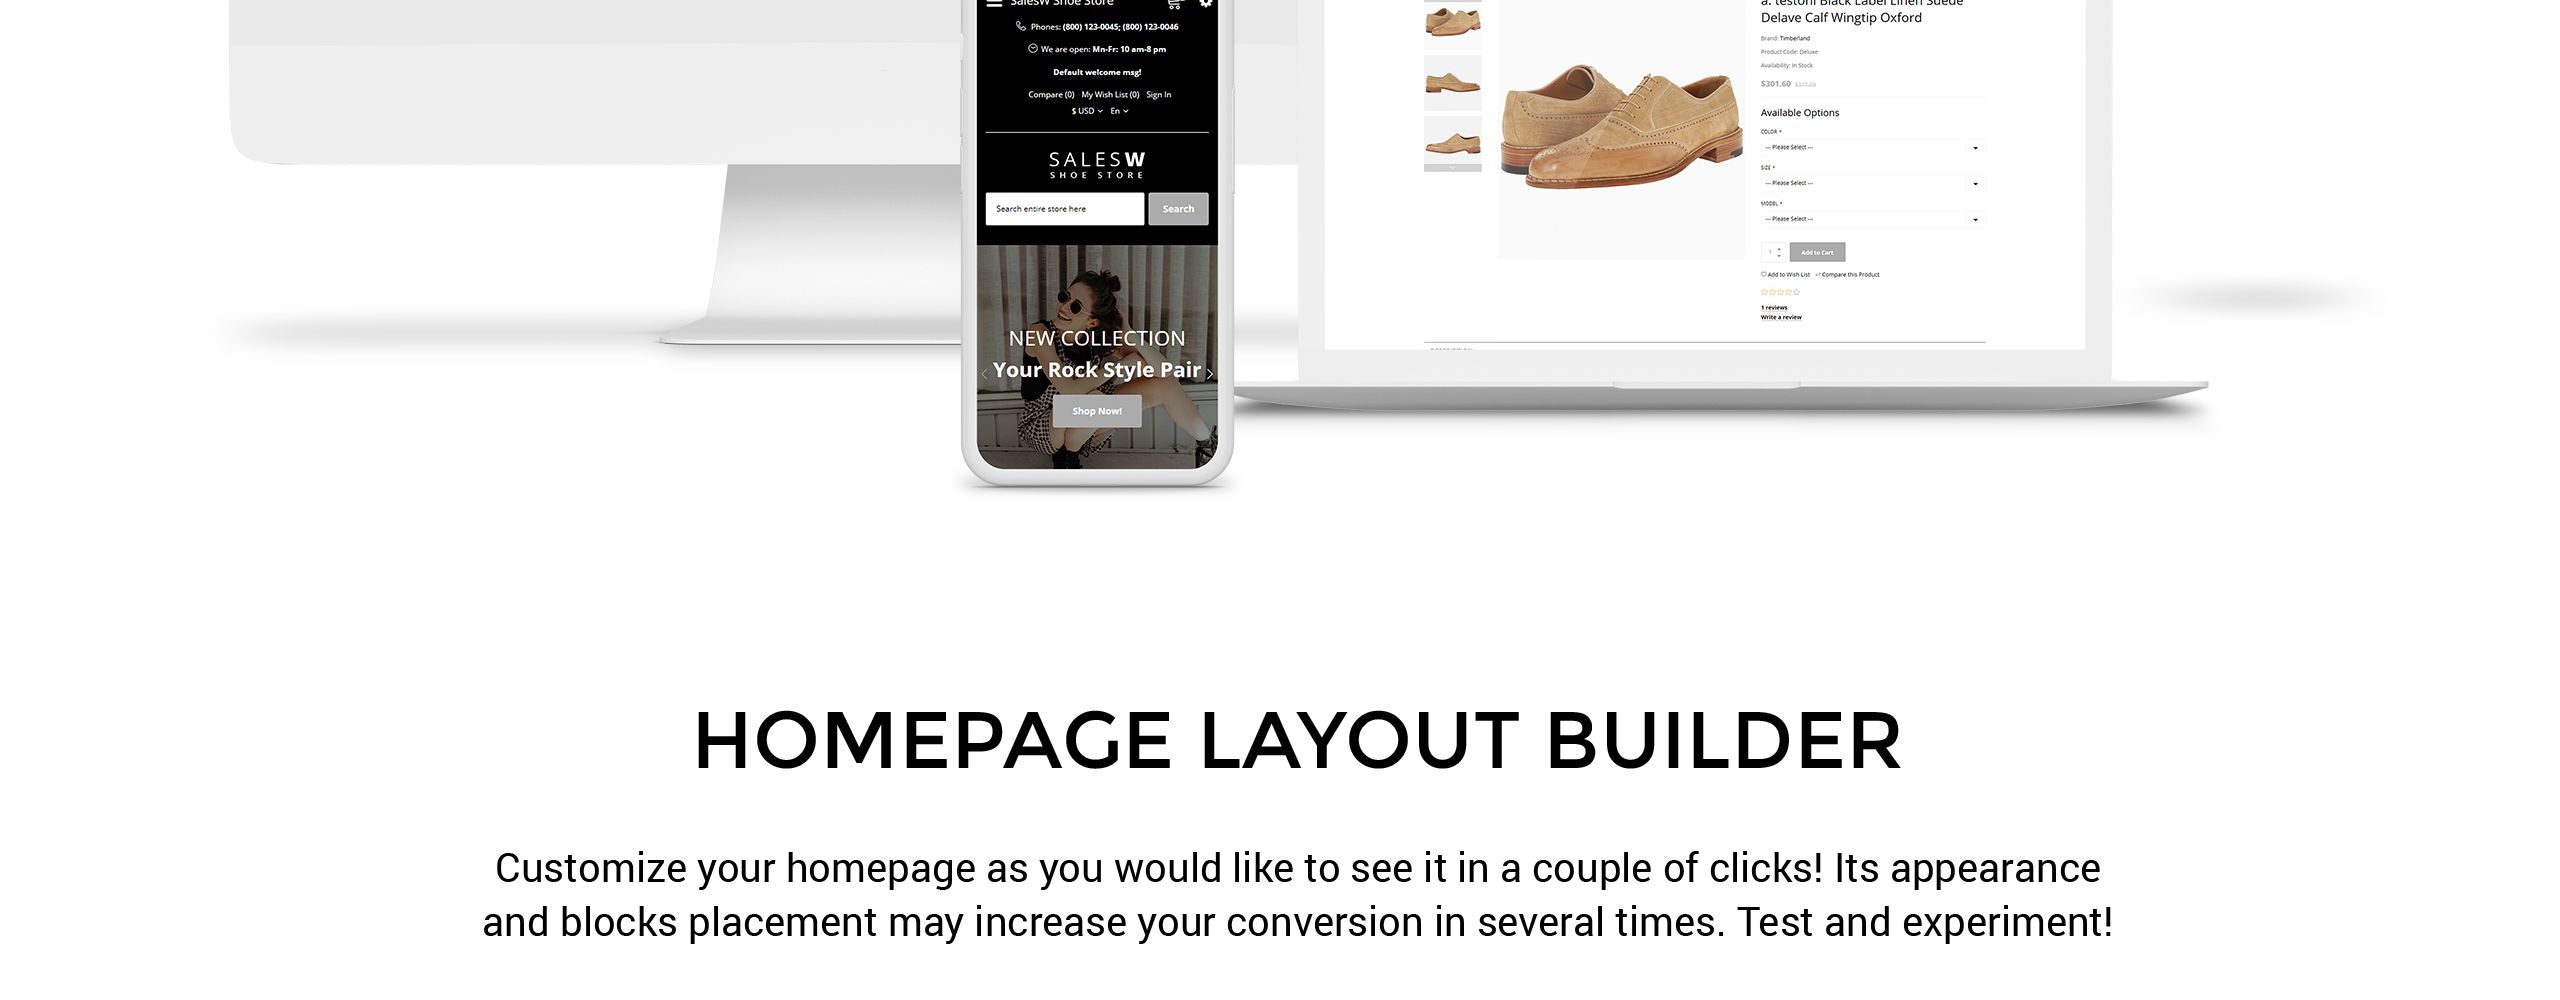 Salesw Shoes Responsive Practival Opencart Template 76737 With Images Opencart Templates Ecommerce Template Portfolio Templates